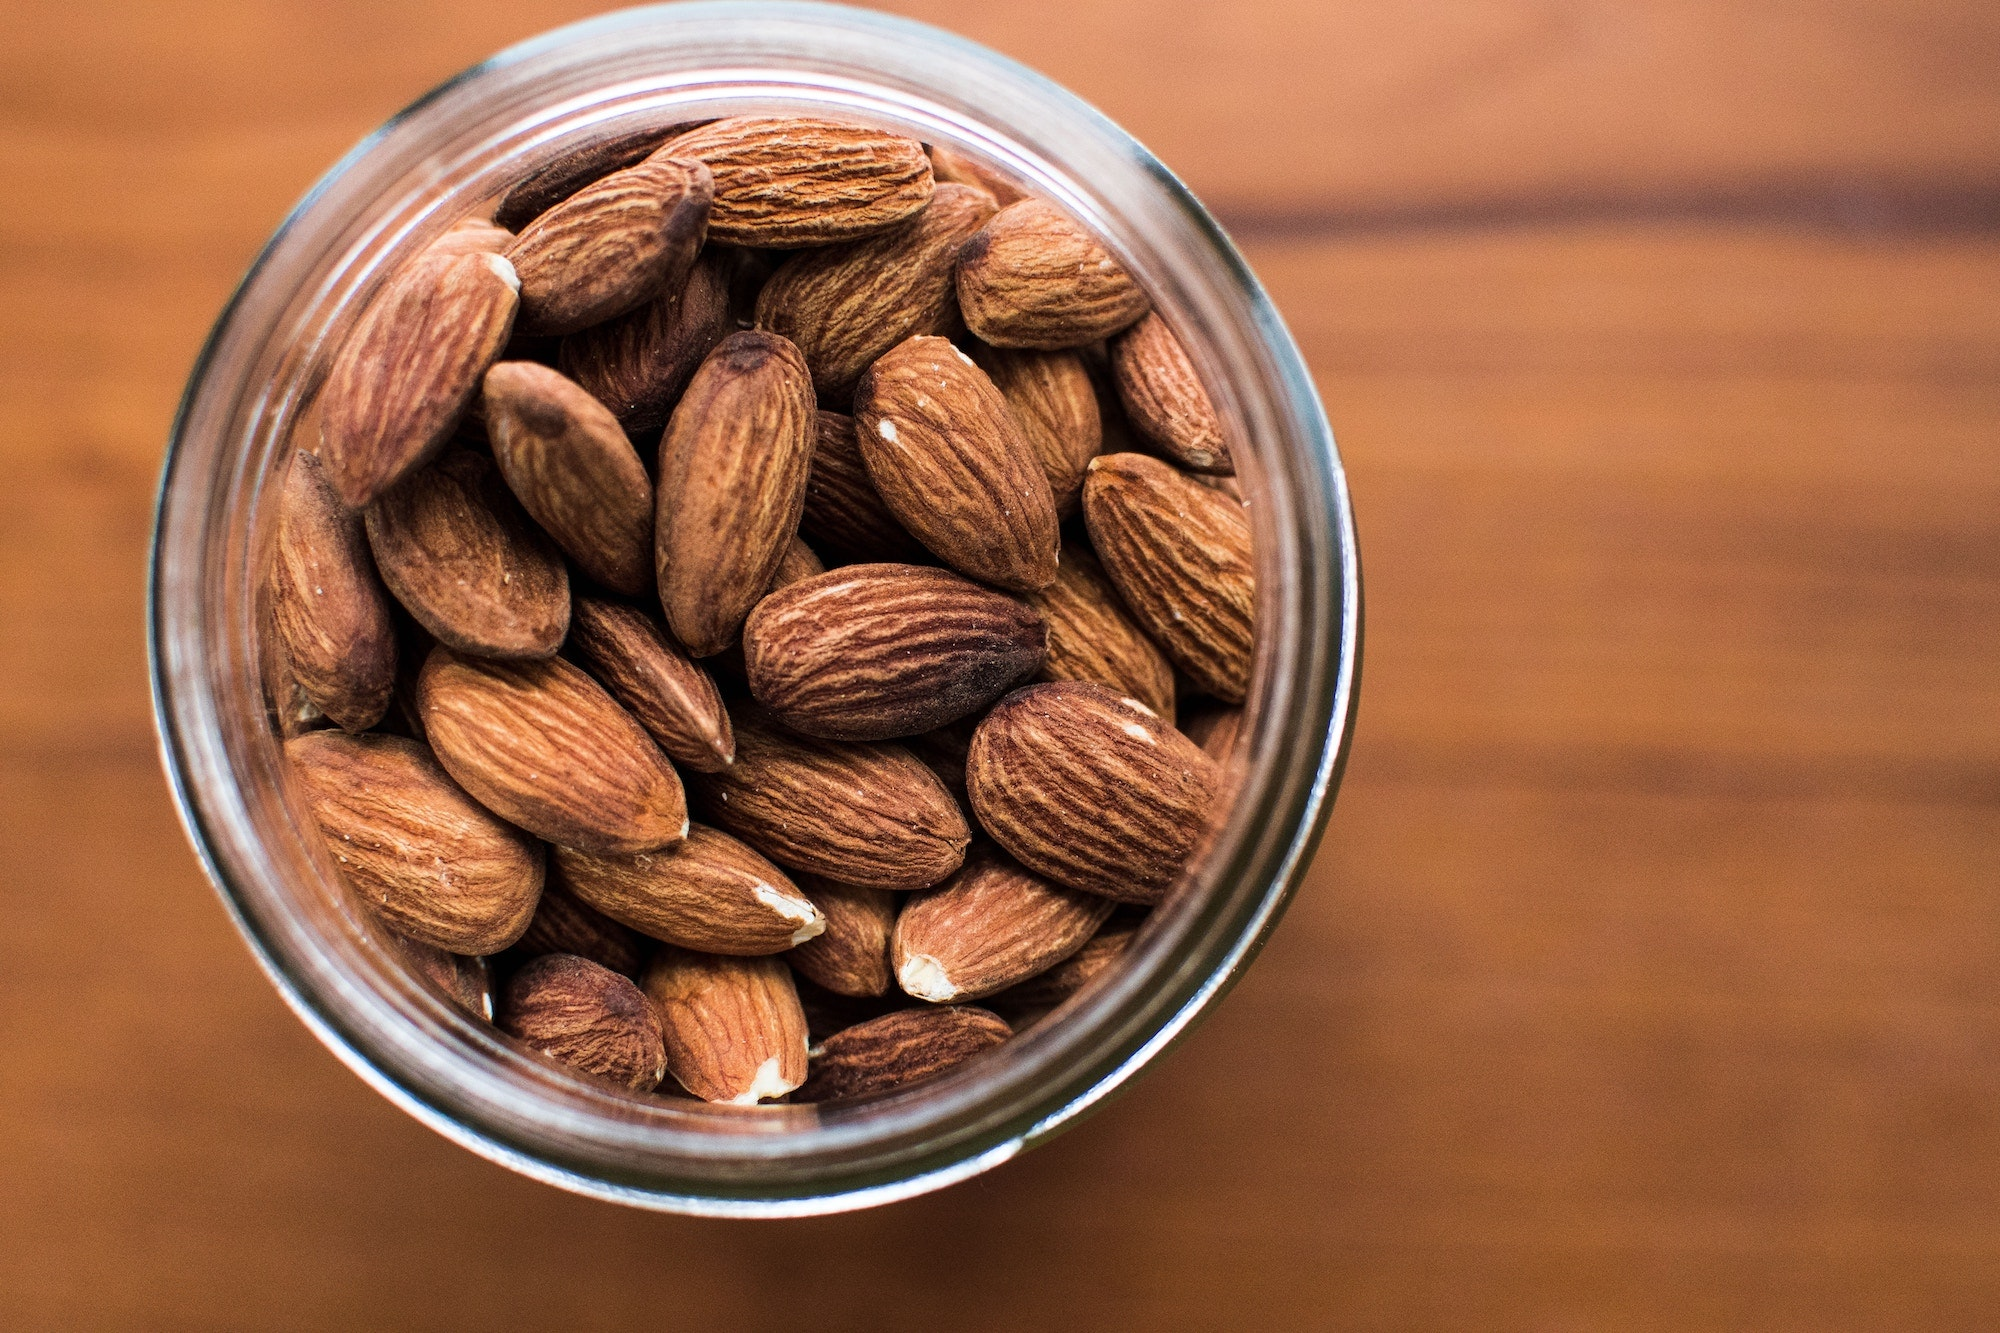 Eating almonds dry-roasted with a coating of tamari (a wheat-free type of soy sauce) can aid in lowering cholesterol.